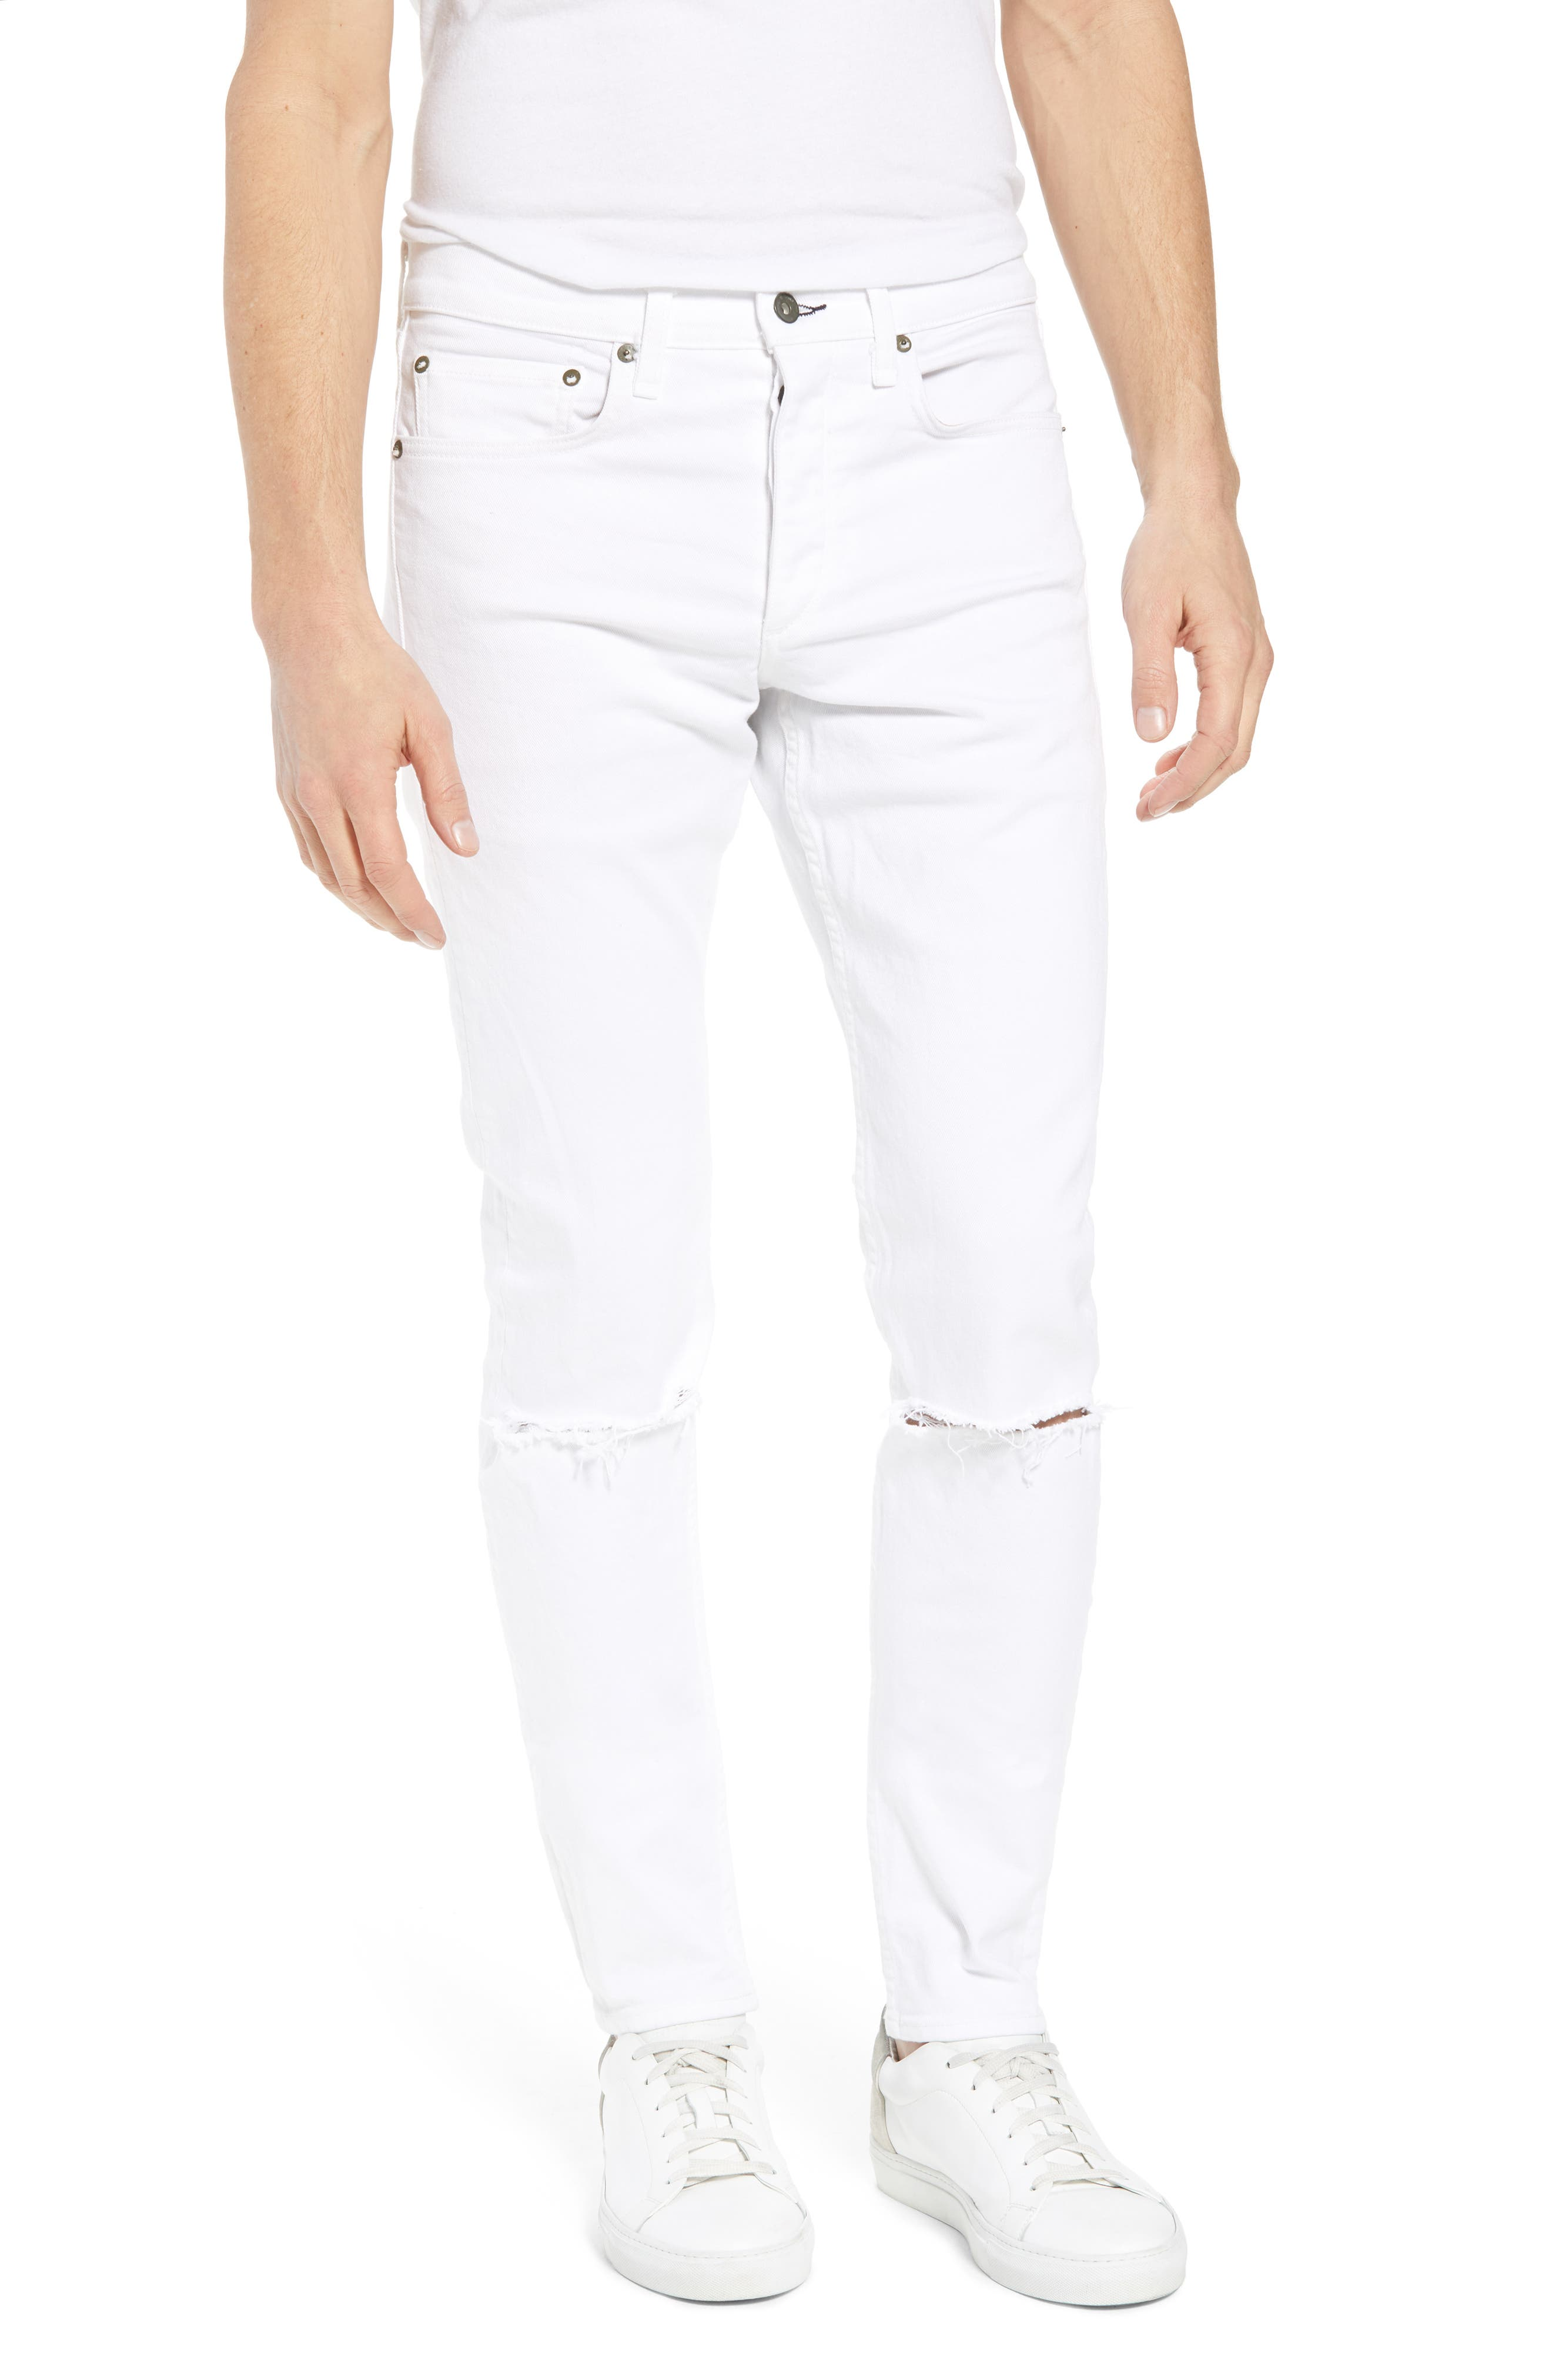 Fit 1 Skinny Fit Jeans,                             Main thumbnail 1, color,                             White W/ Holes